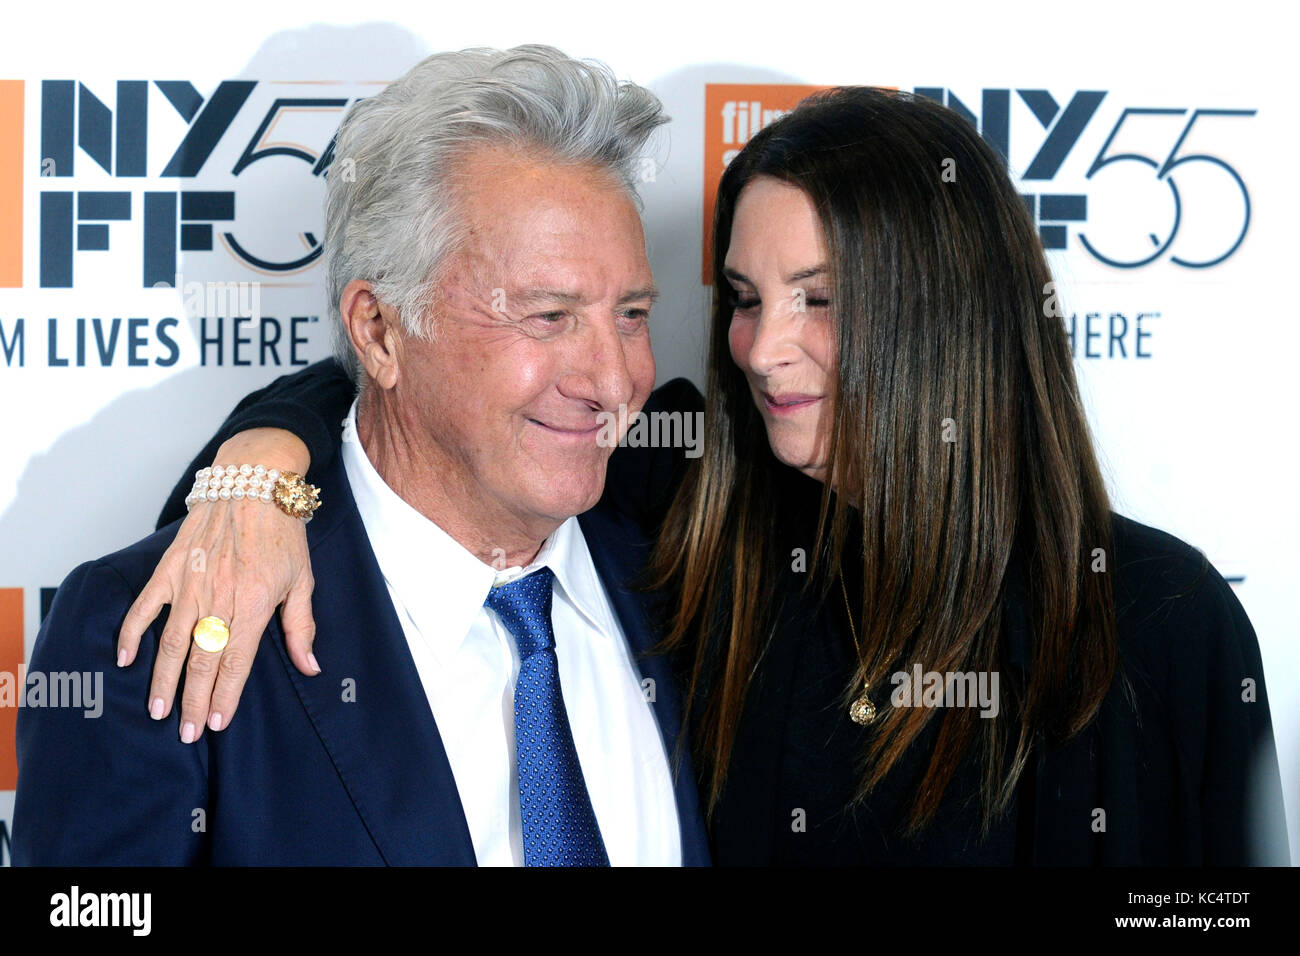 Dustin Hoffman and his wife Lisa attend 'The Meyerowitz Stories' premiere during the 55th New York Film Festival Stock Photo